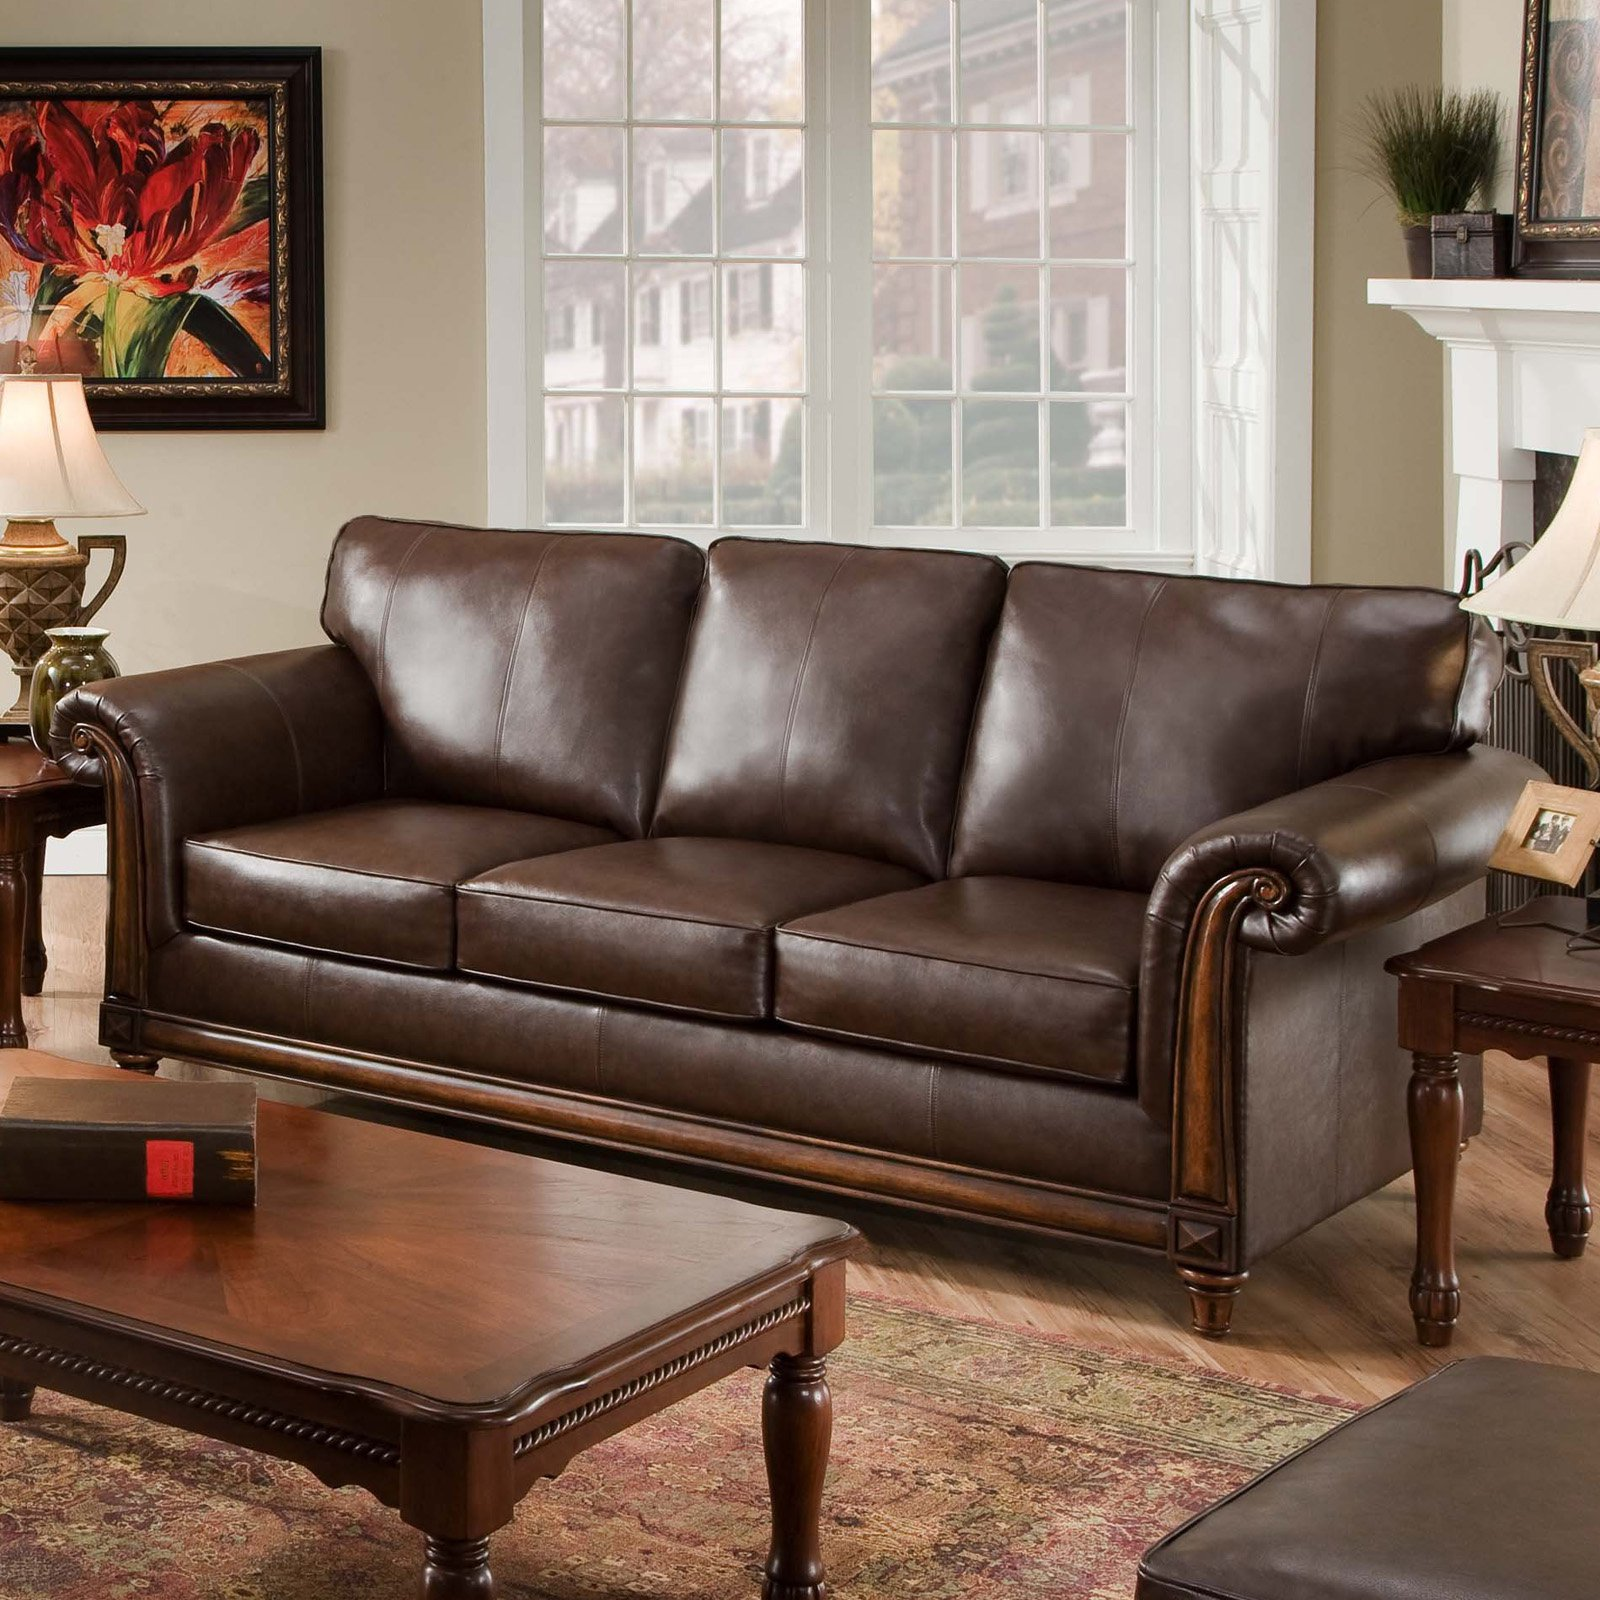 Scandinavian Furniture San Diego Simmons San Diego Coffee Leather Sofa